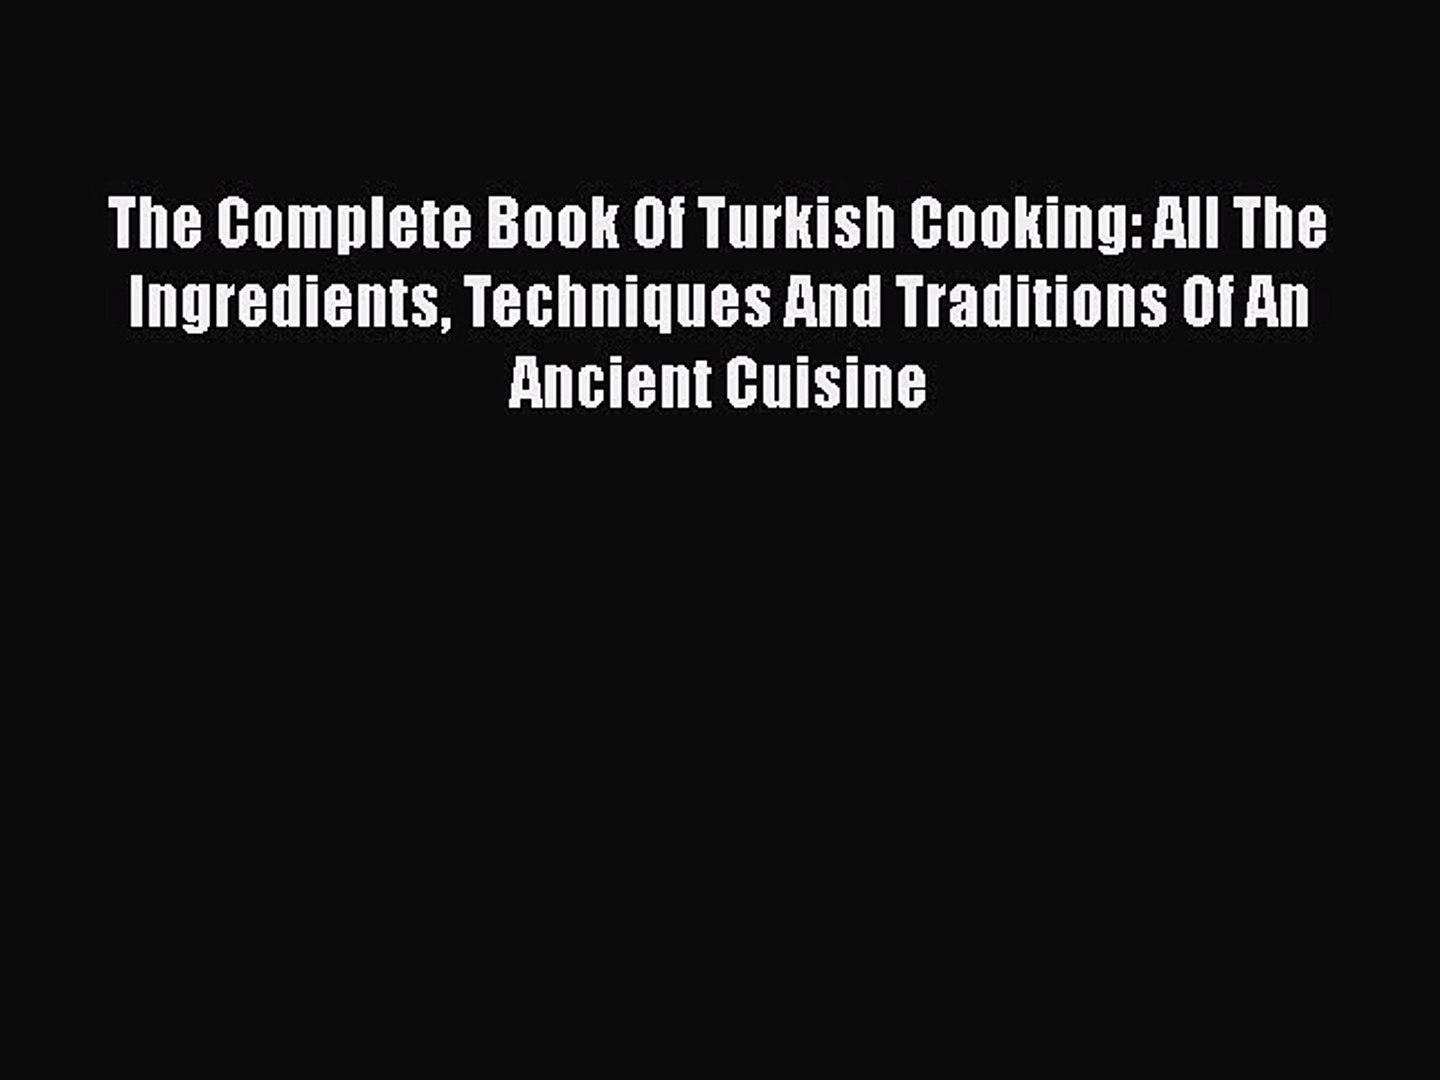 All The Ingredients The Complete Book Of Turkish Cooking Techniques And Traditions Of An Ancient Cuisine